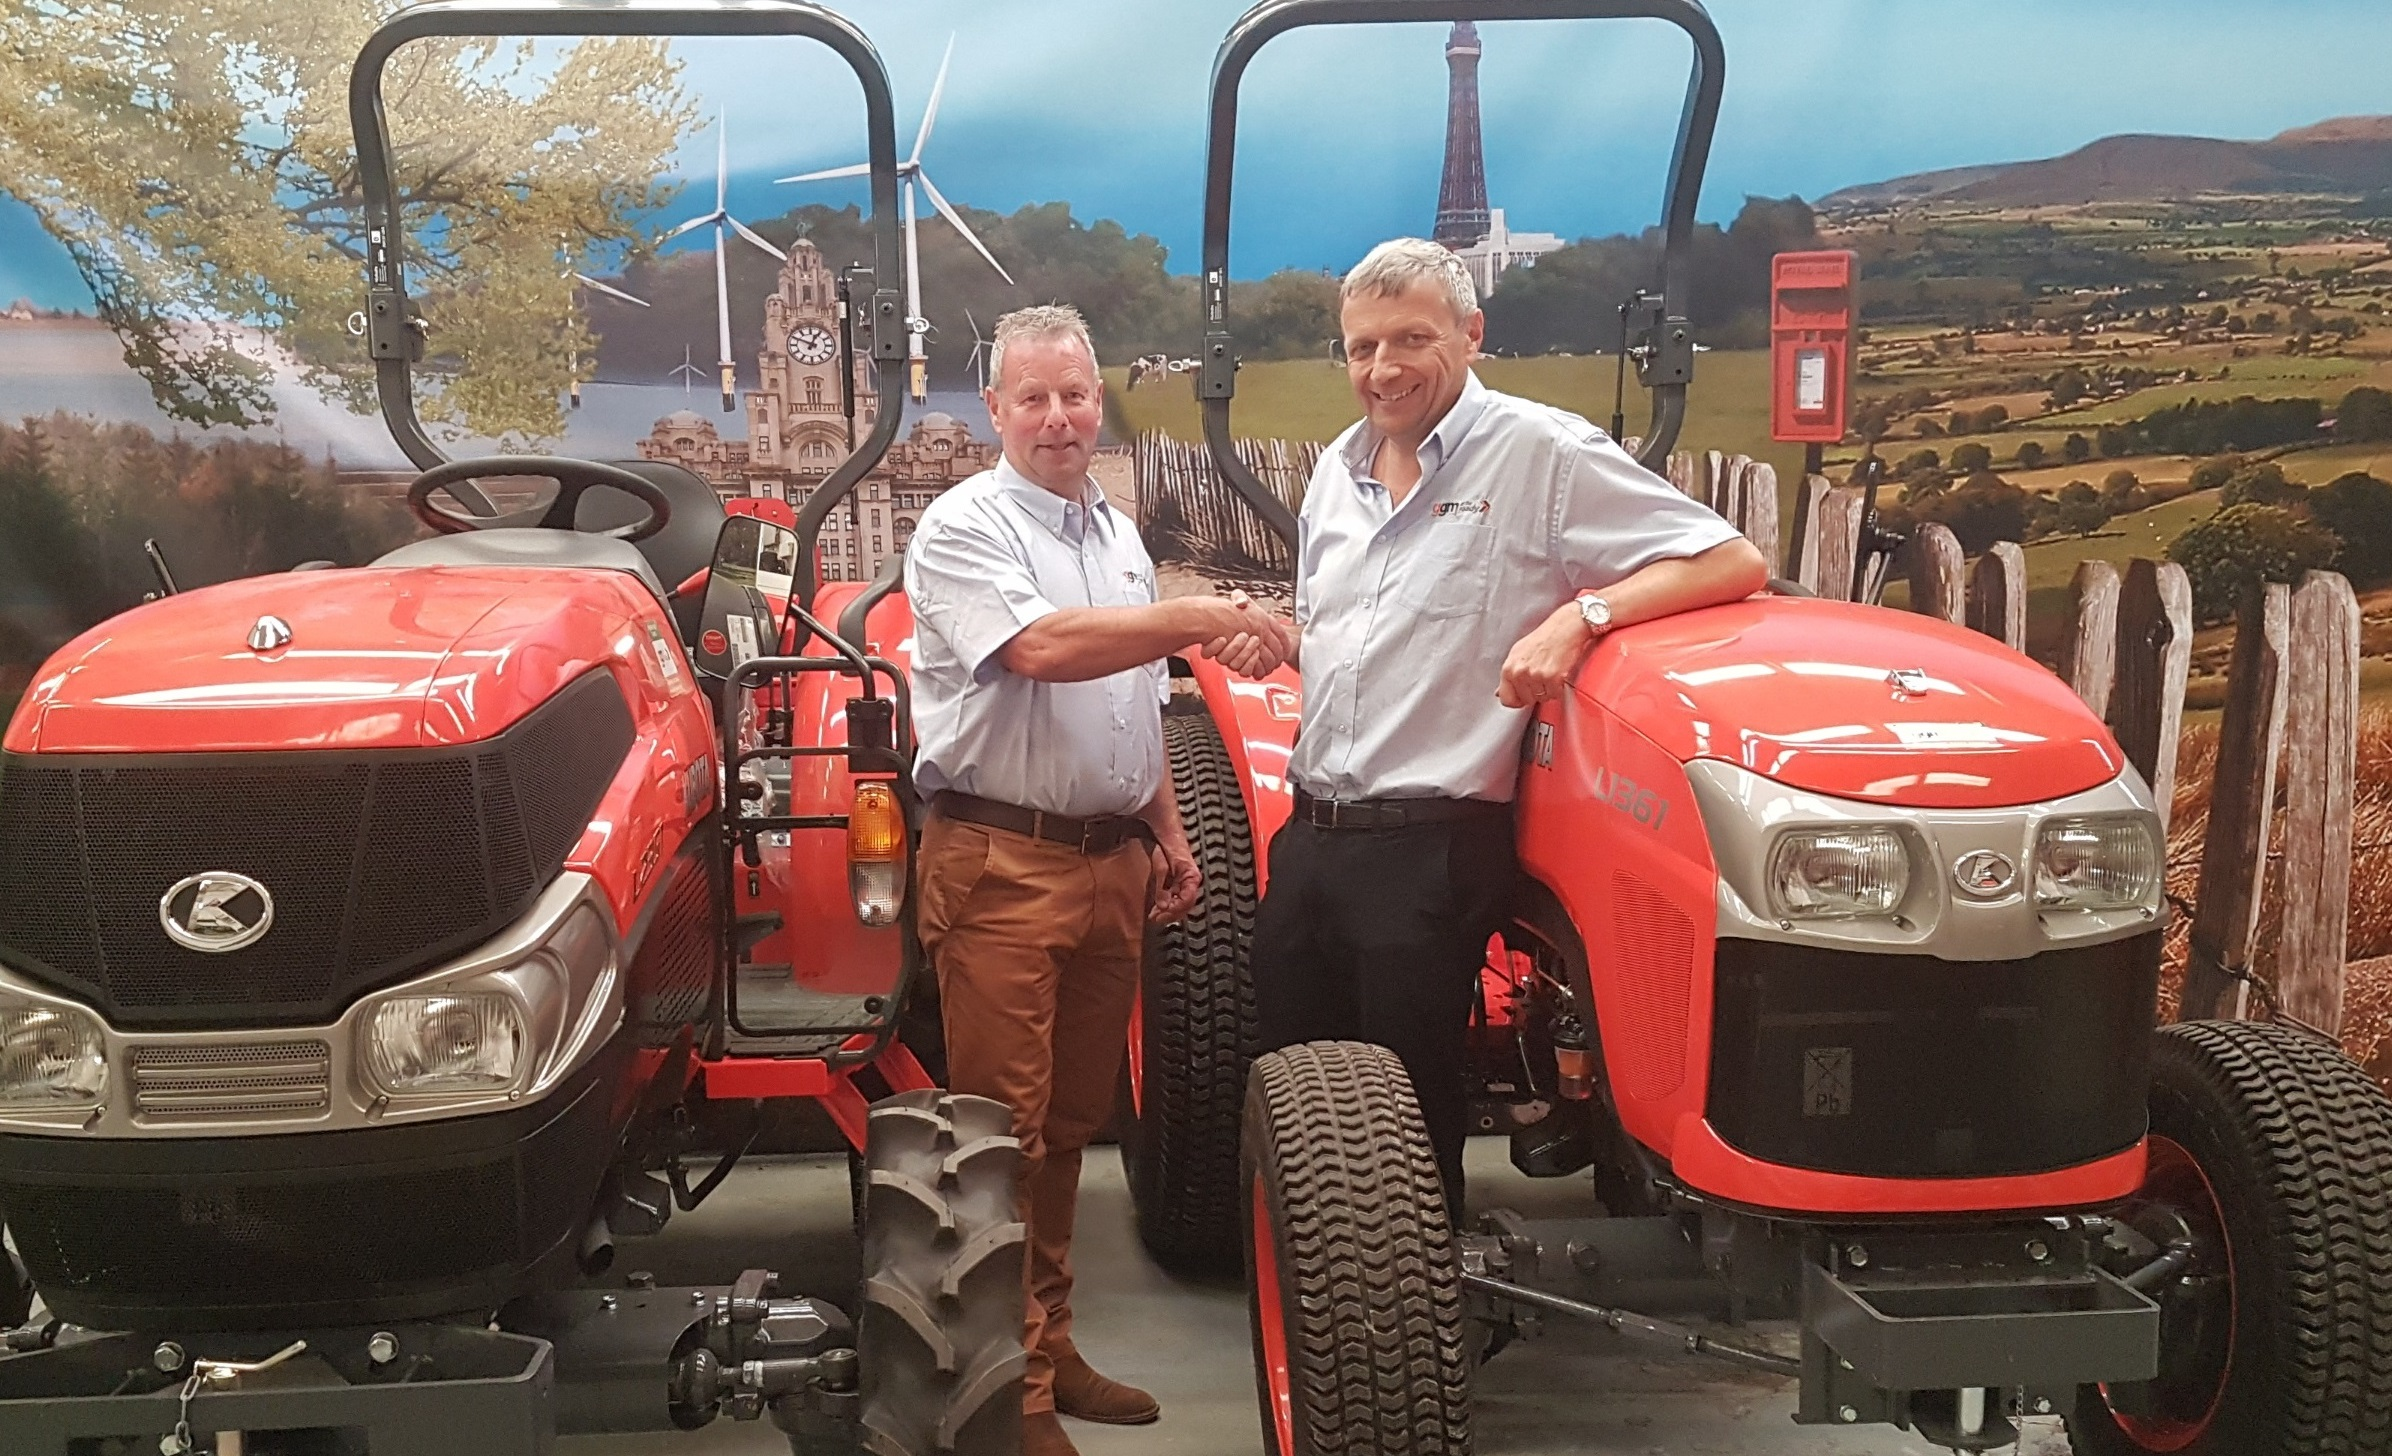 GGM Groundscare continue to expand our sales team